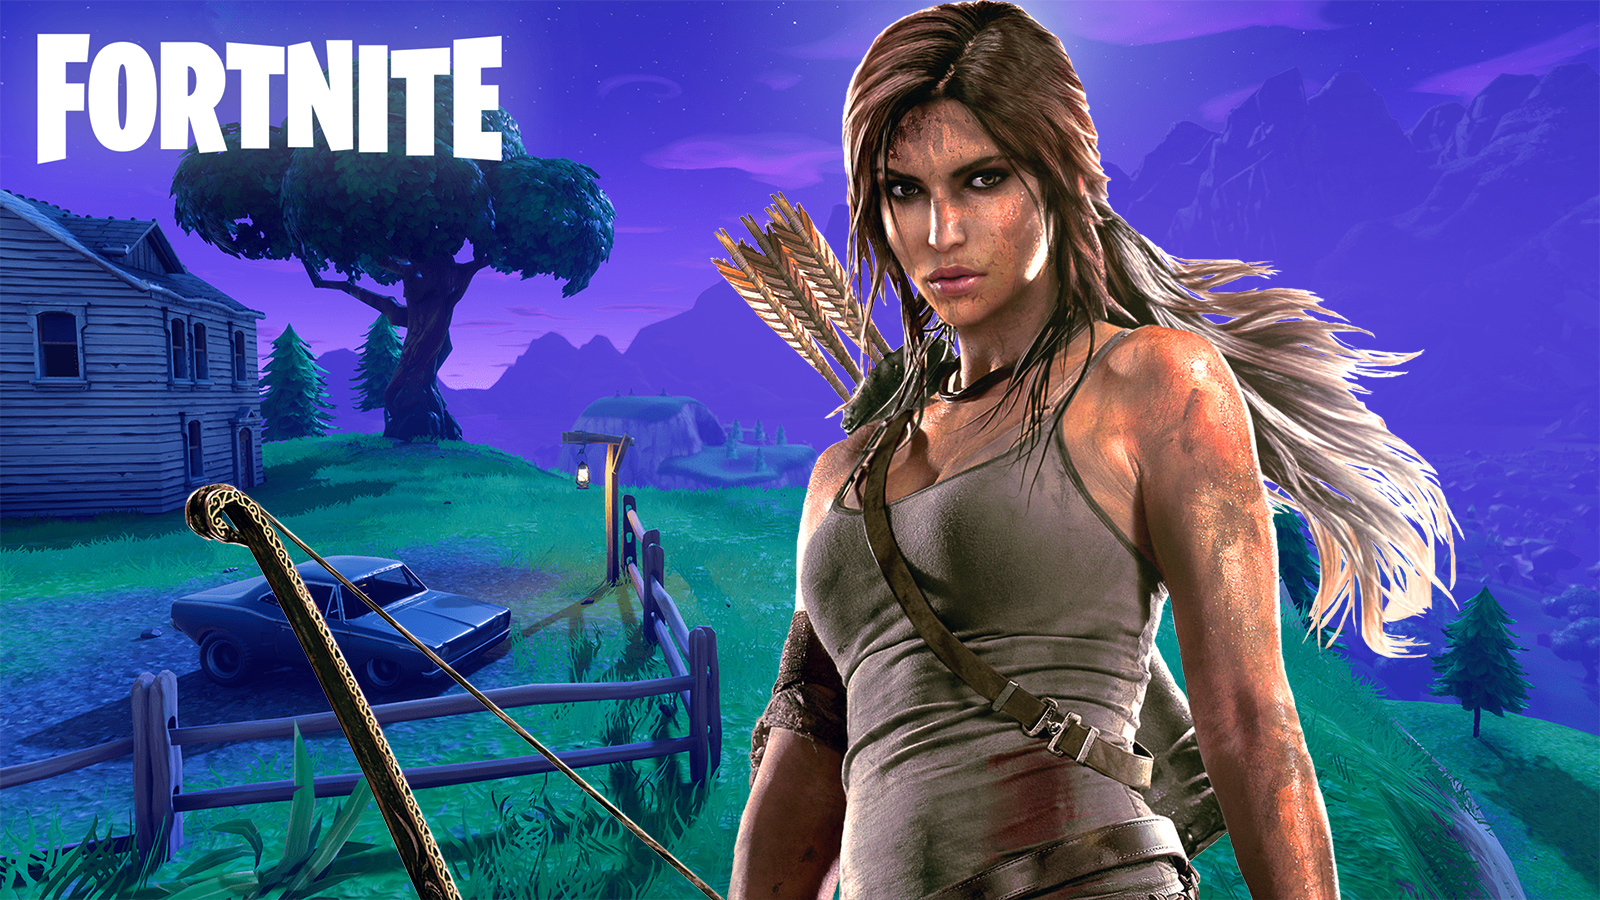 Fortnite Lara Croft